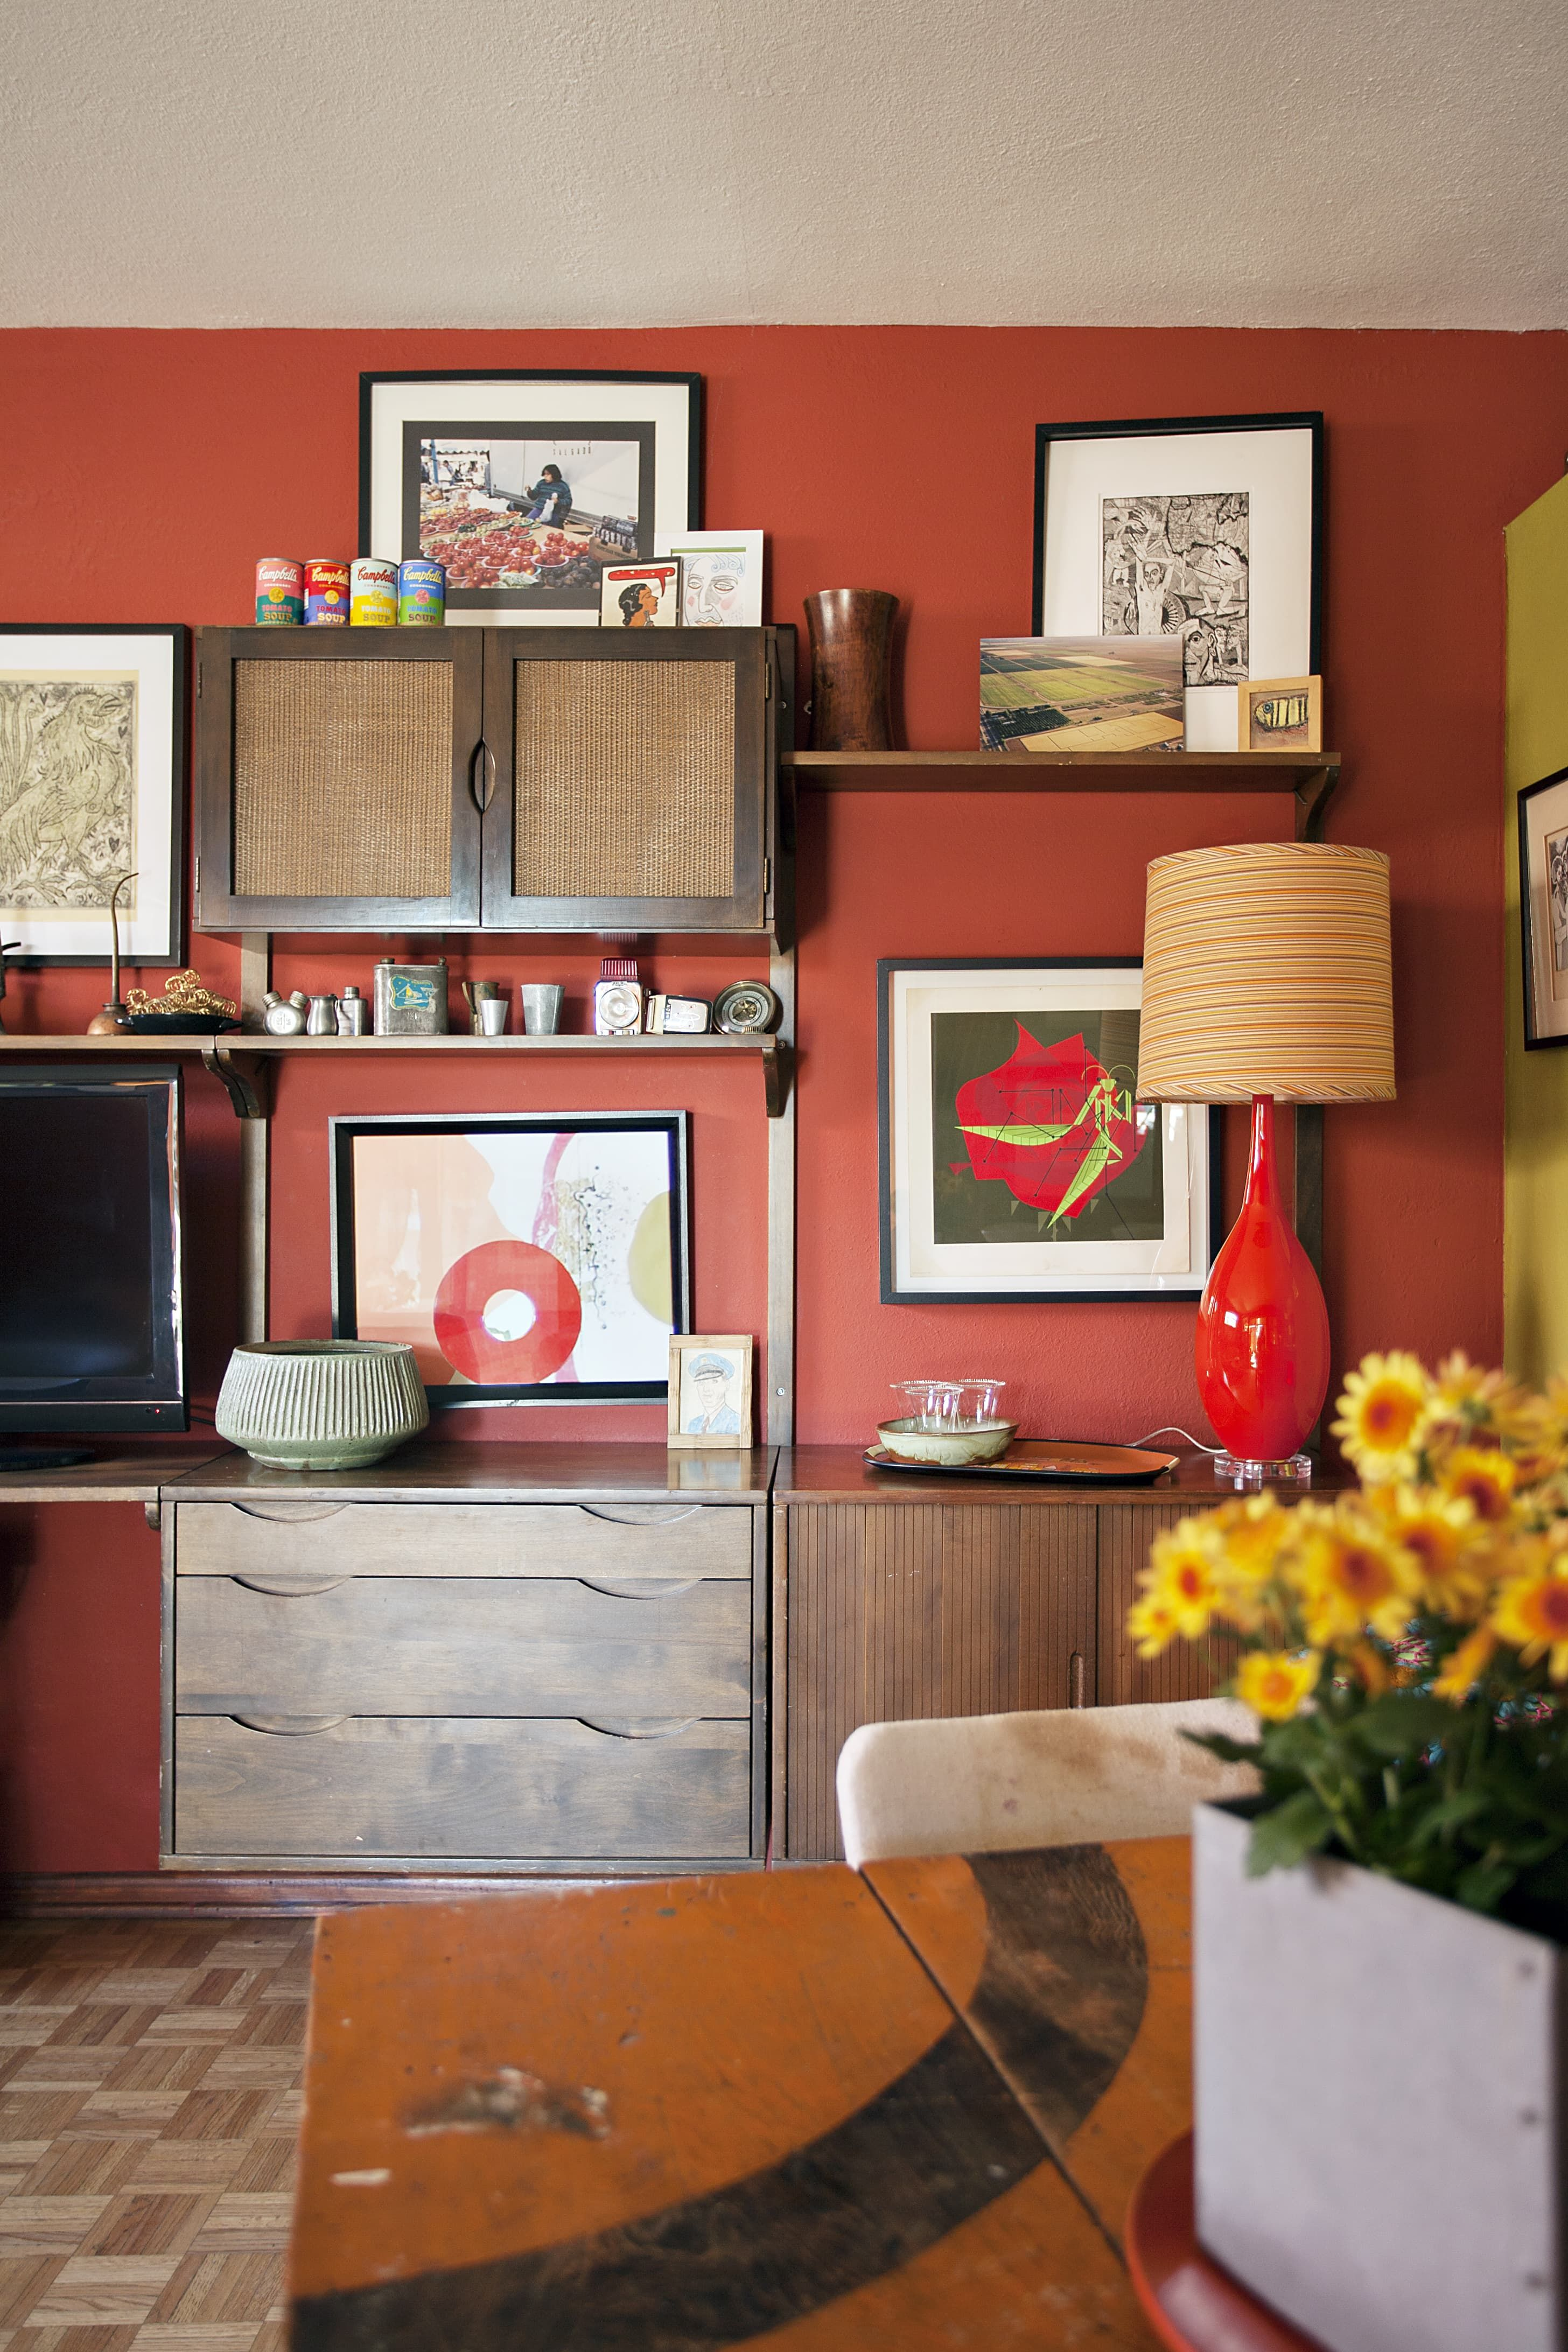 House Tour: A Colorful, Fearless Arizona Home | Family homes, House ...